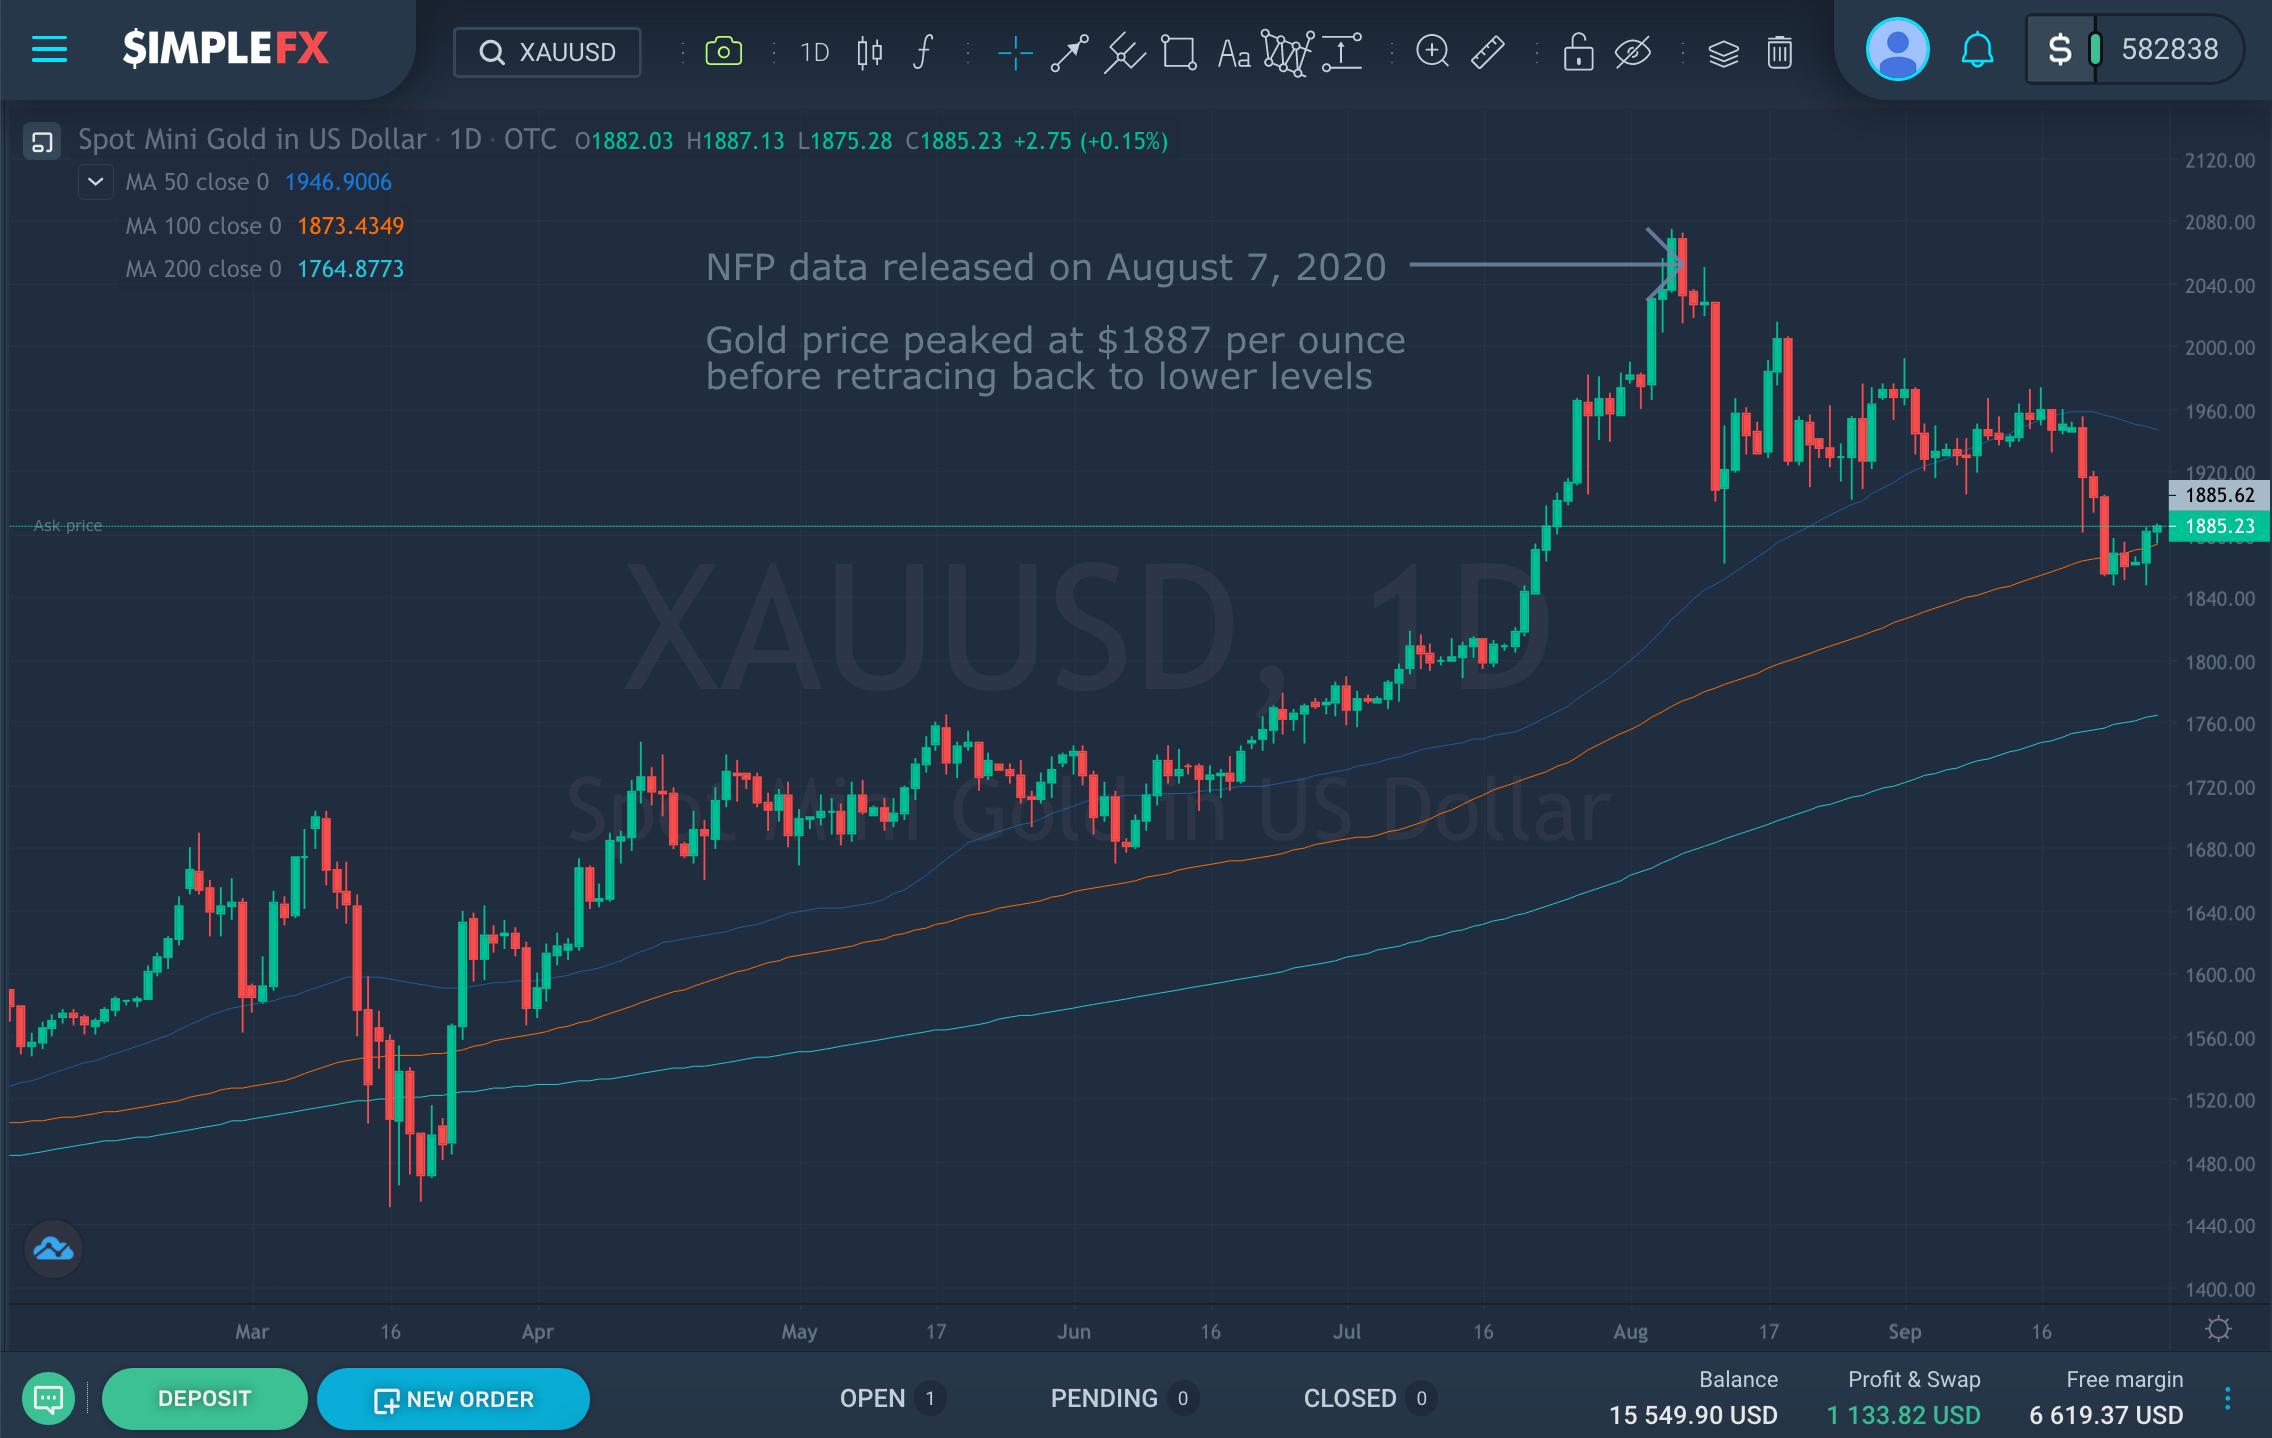 Gold rally paused on August 7 after peaking at $1887 per ounce, SimpleFX WebTrader.png